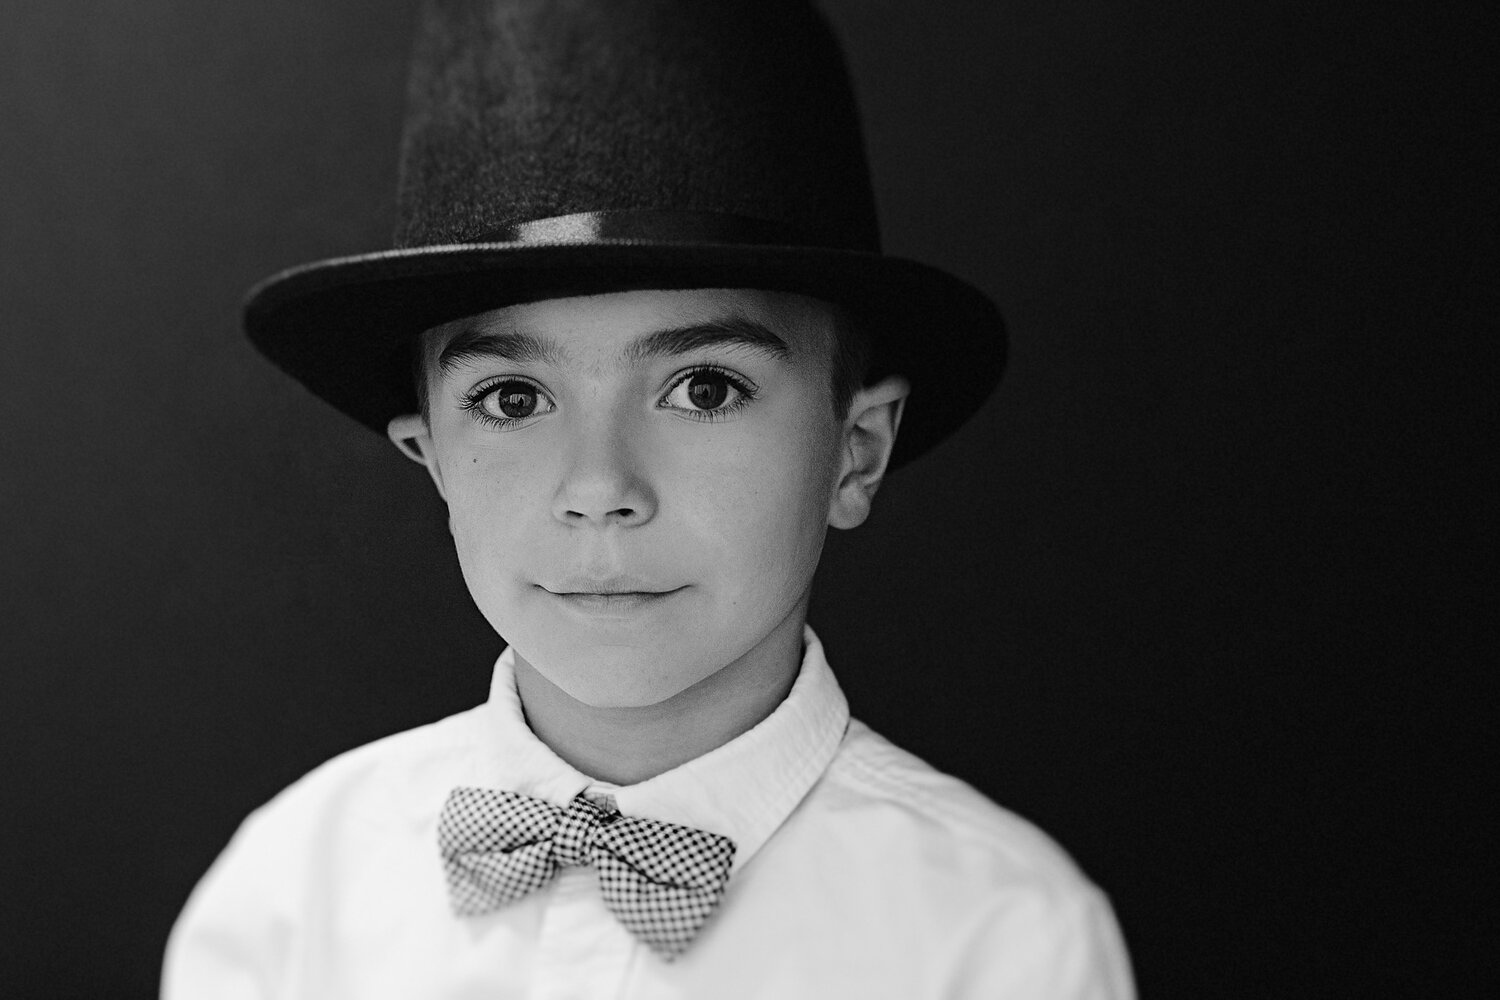 black and white portrait of boy in bowtie and top hat new braunfels photography studio